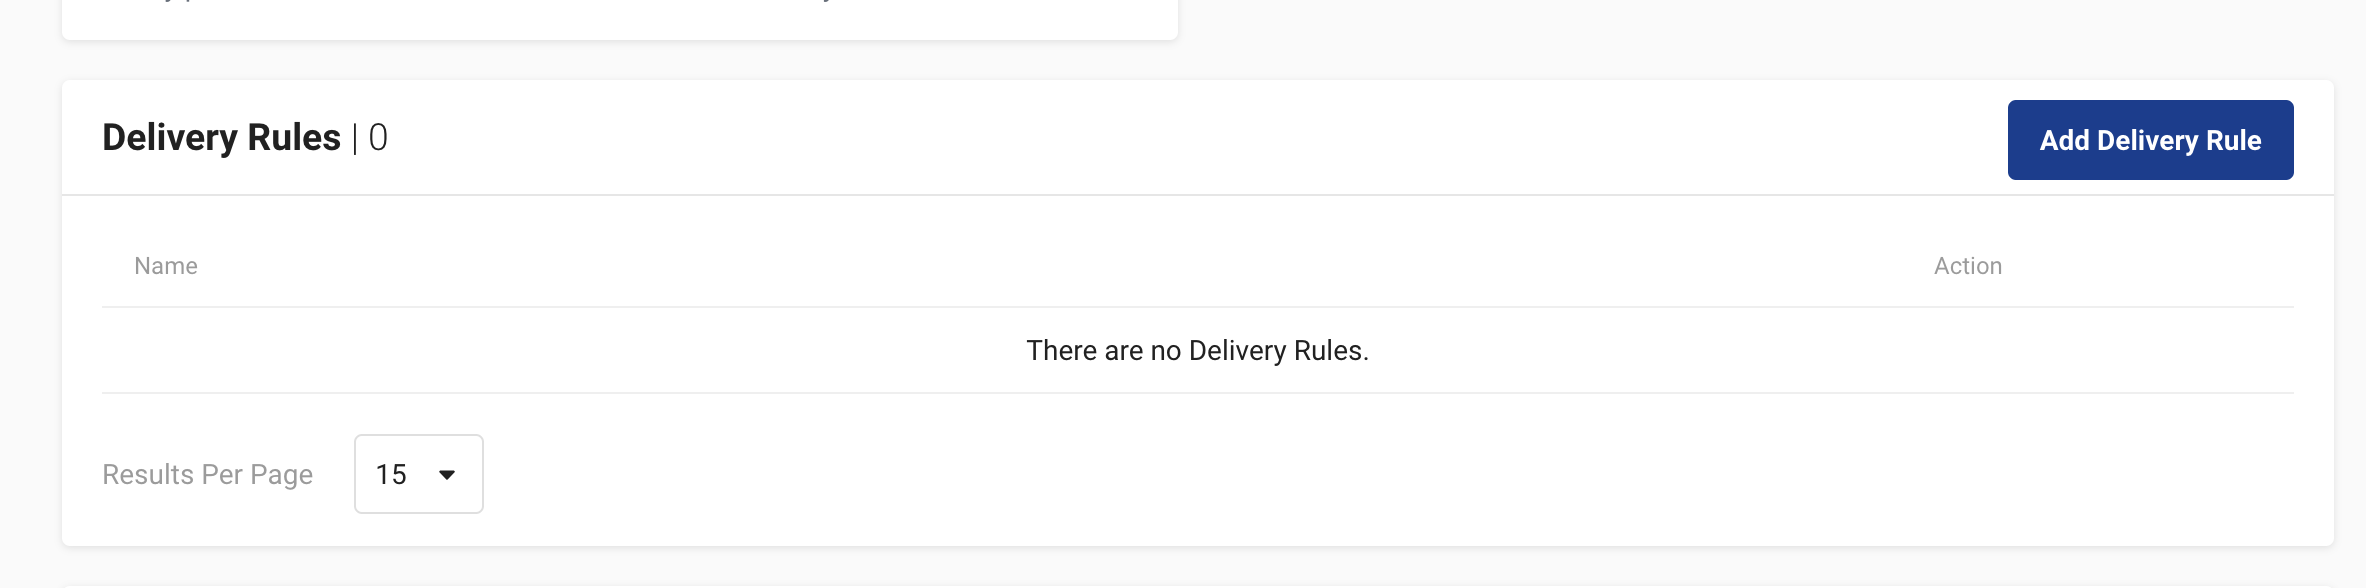 delivery_rules.png